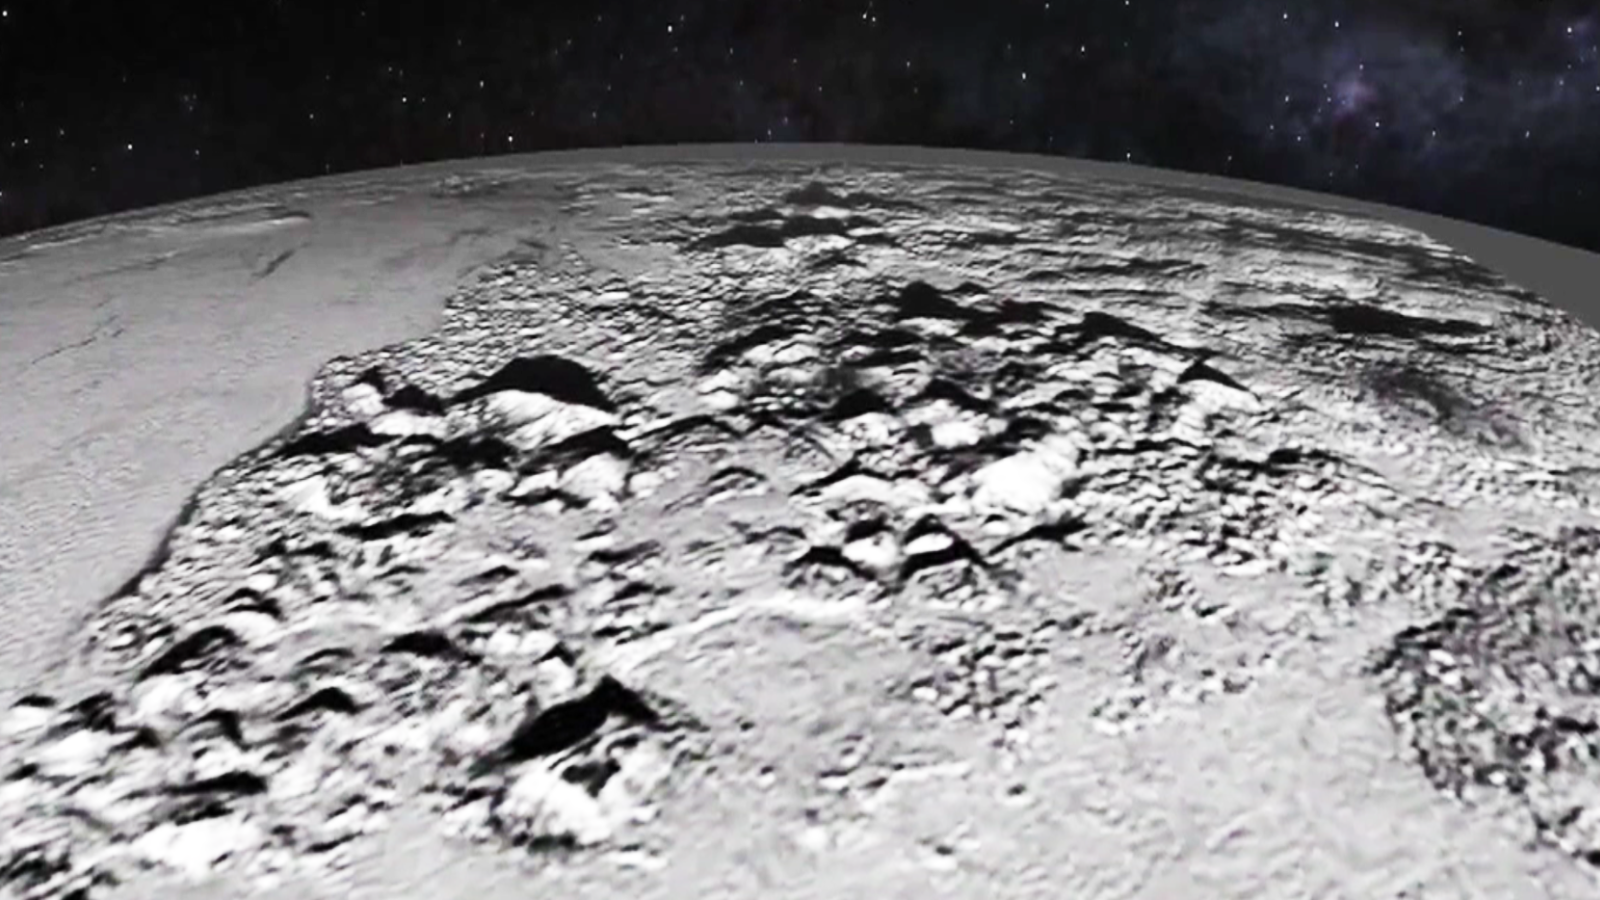 Kerberos Moon Of Plluto: They're Here! New Horizons' Best Shots Of Pluto Arriving